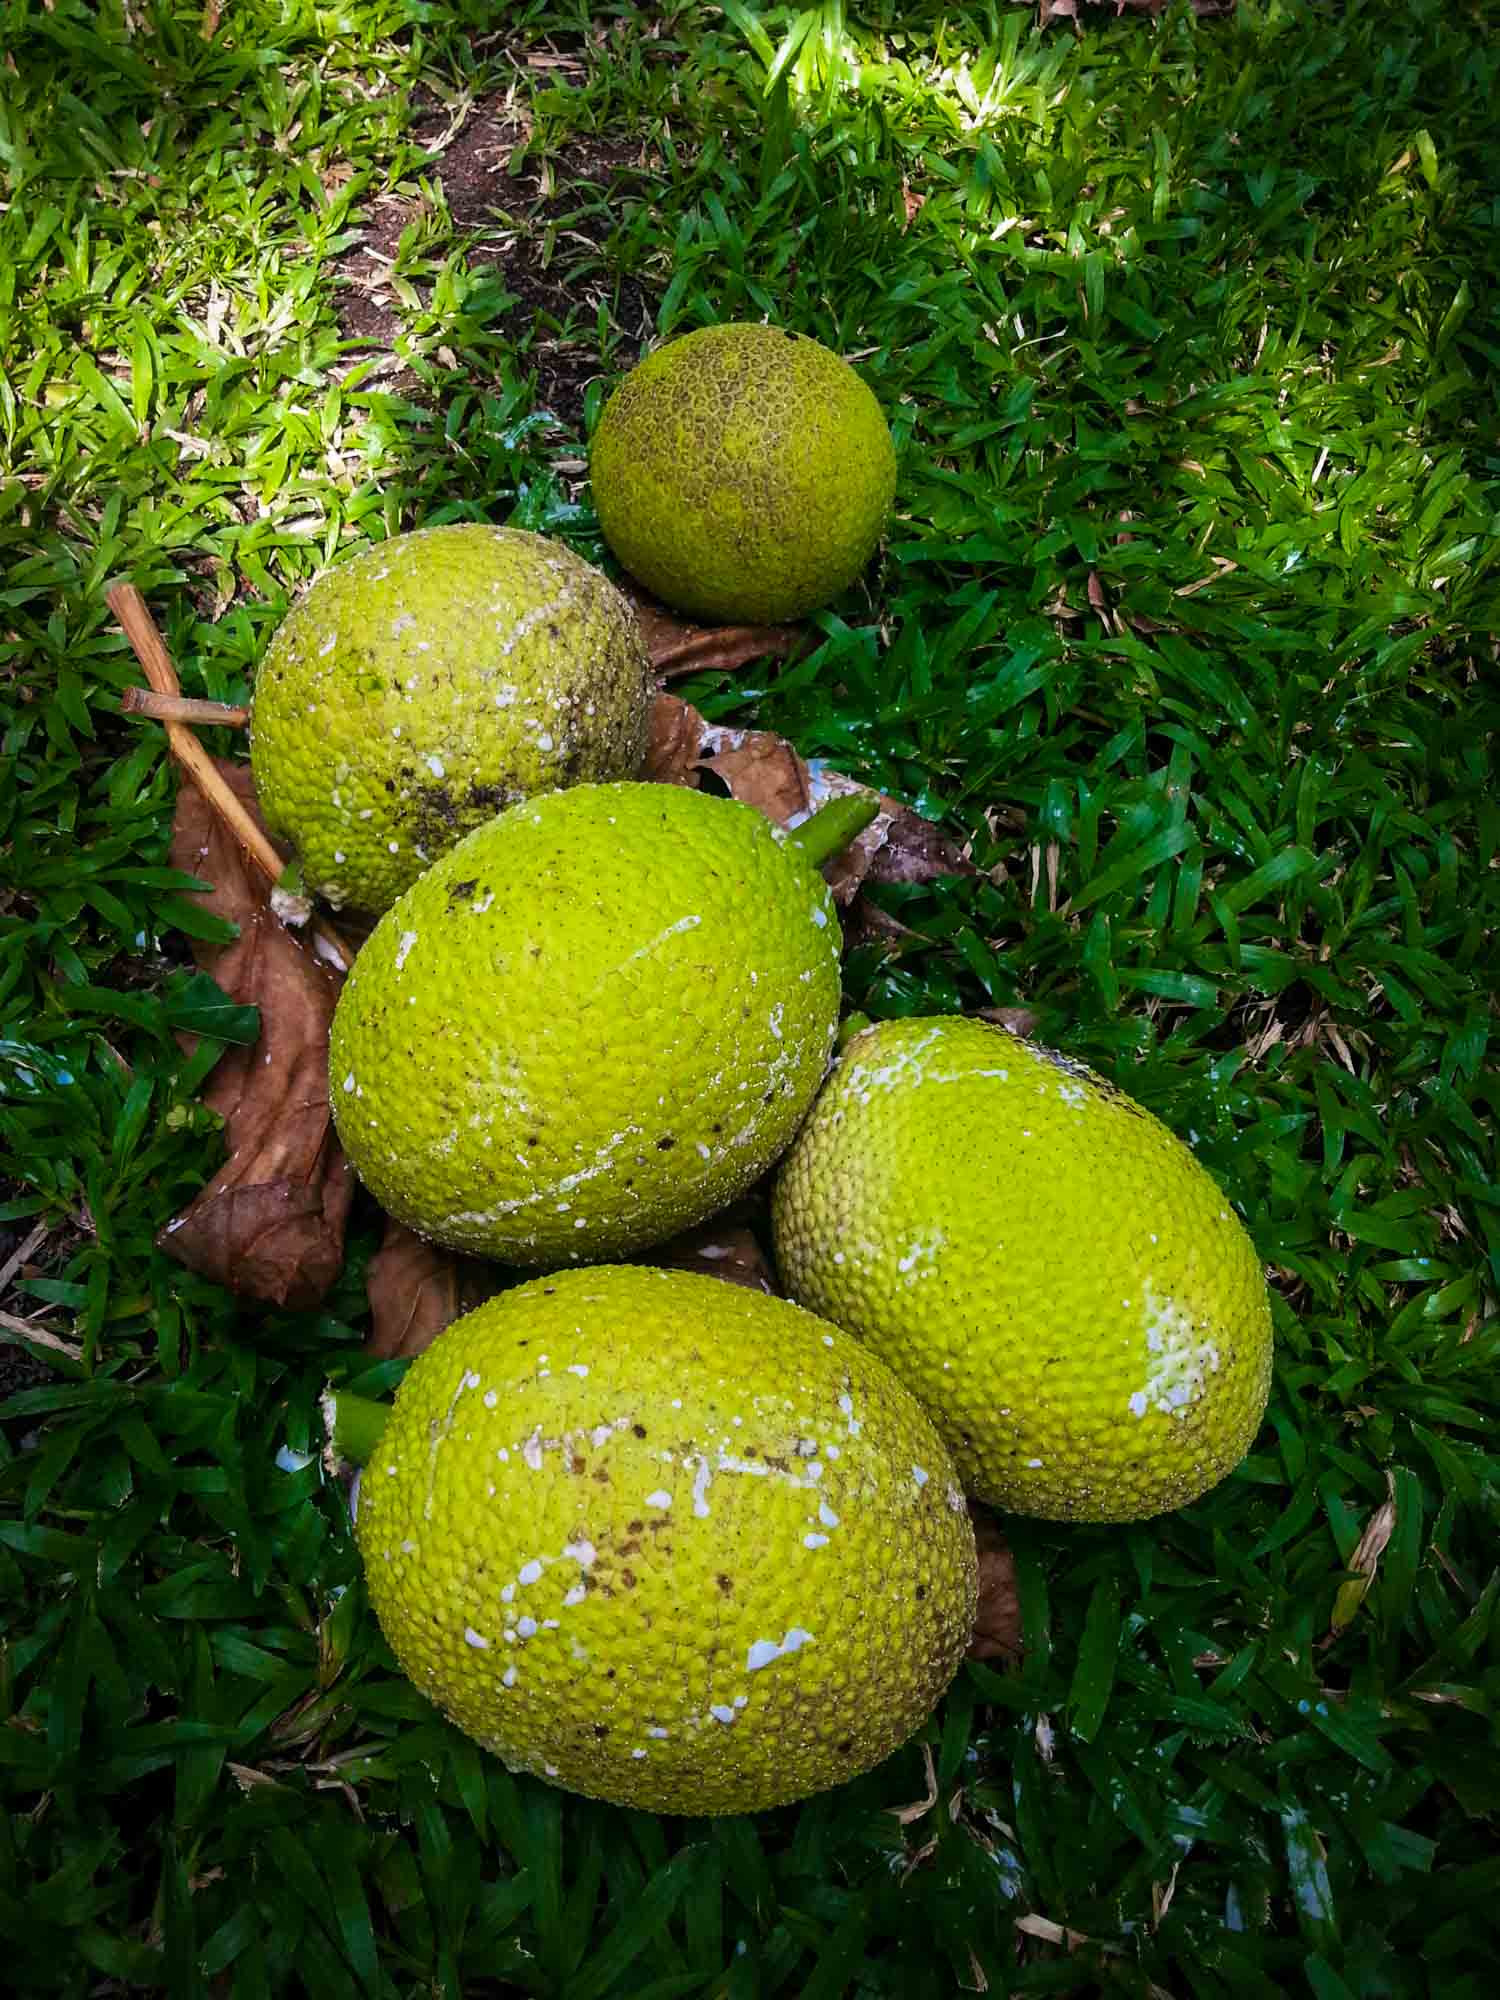 Jamaican fruits called breadfruit, also known as ulu in Hawaii. Several sizes on the grass so should diversity.